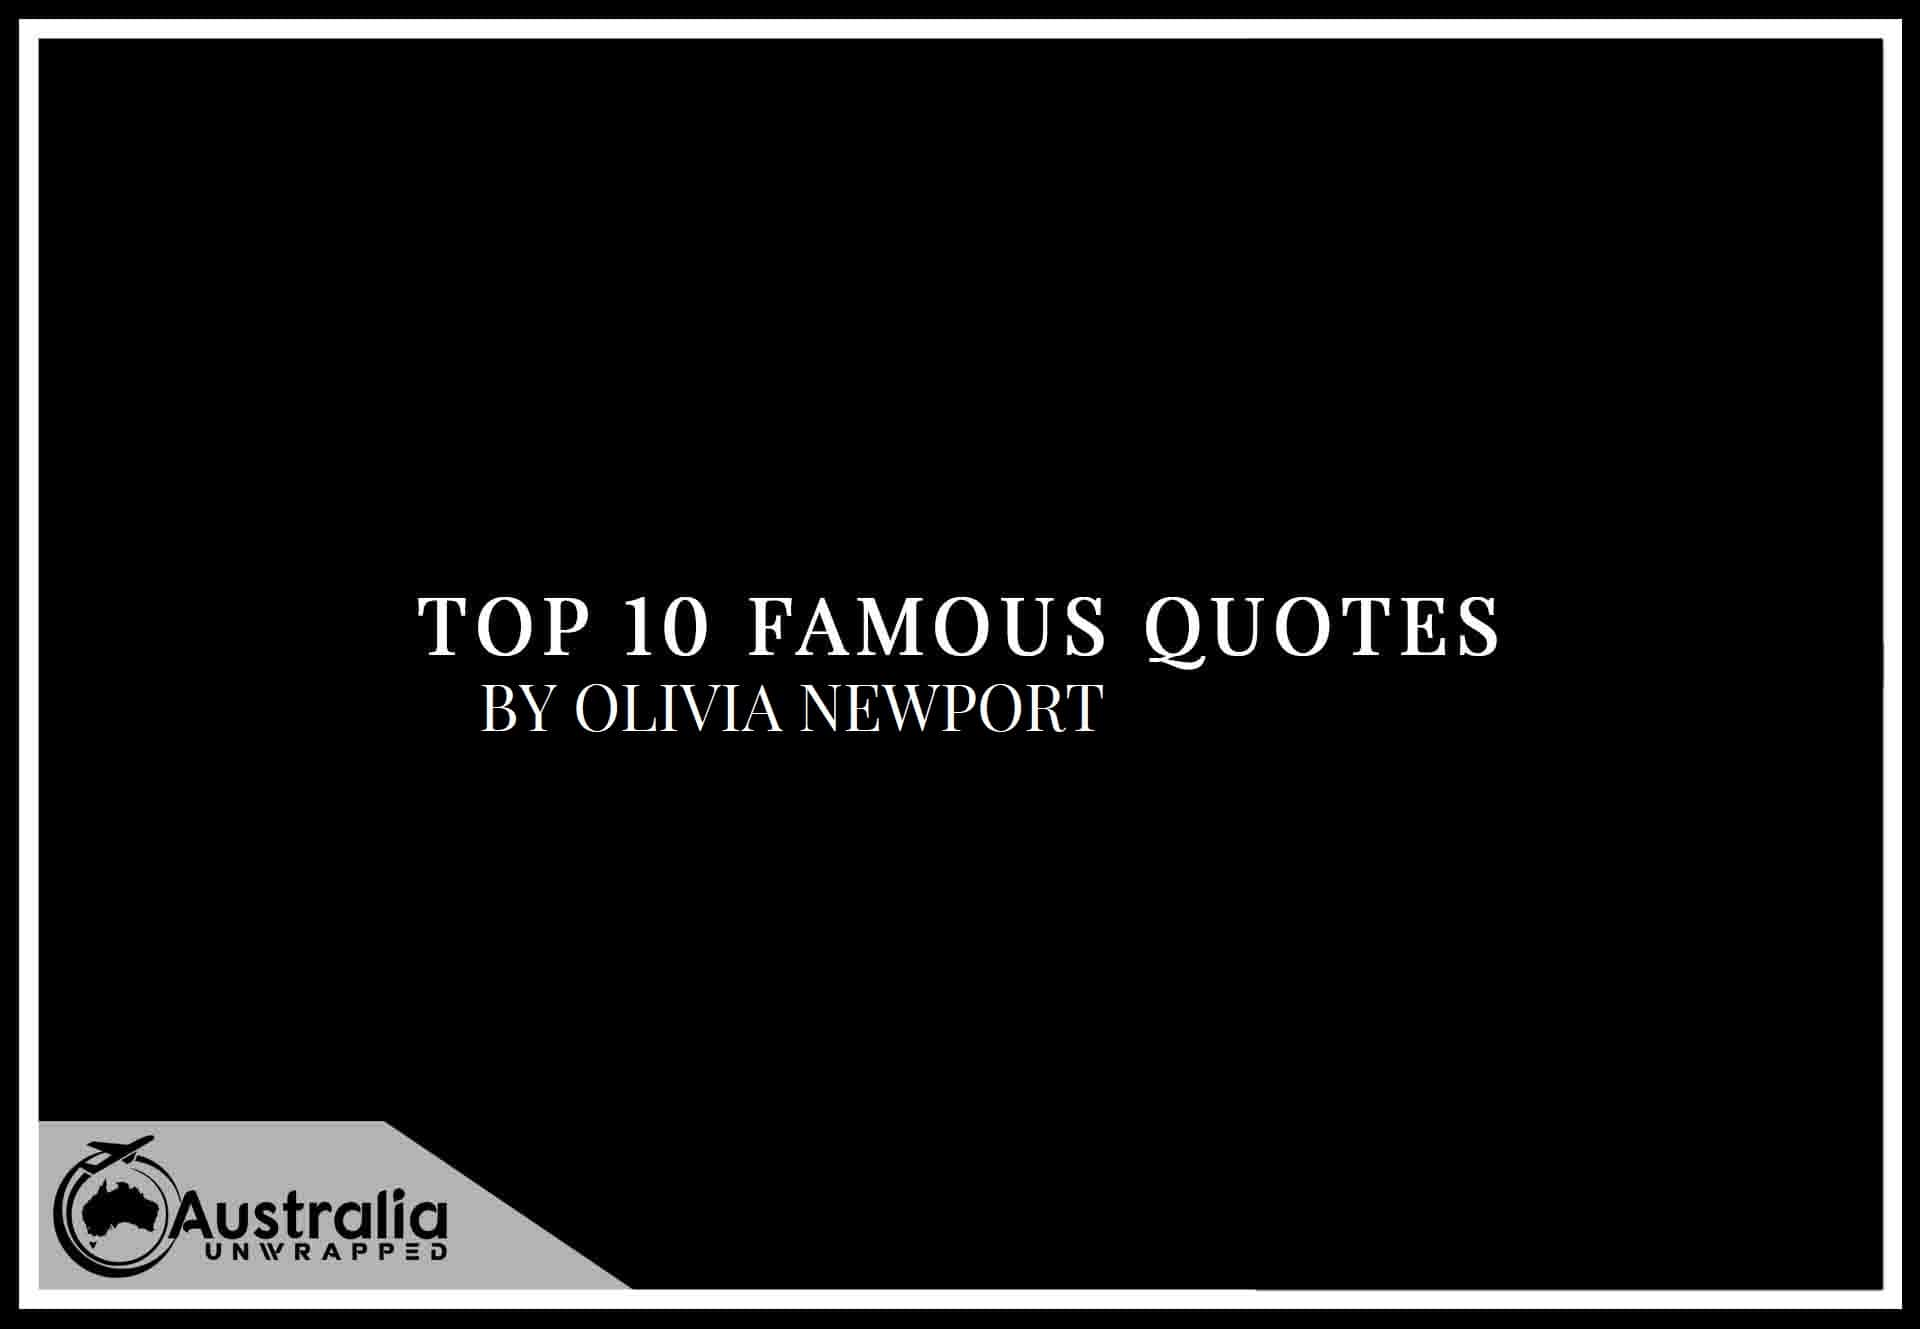 Top 10 Famous Quotes by Author Olivia Newport